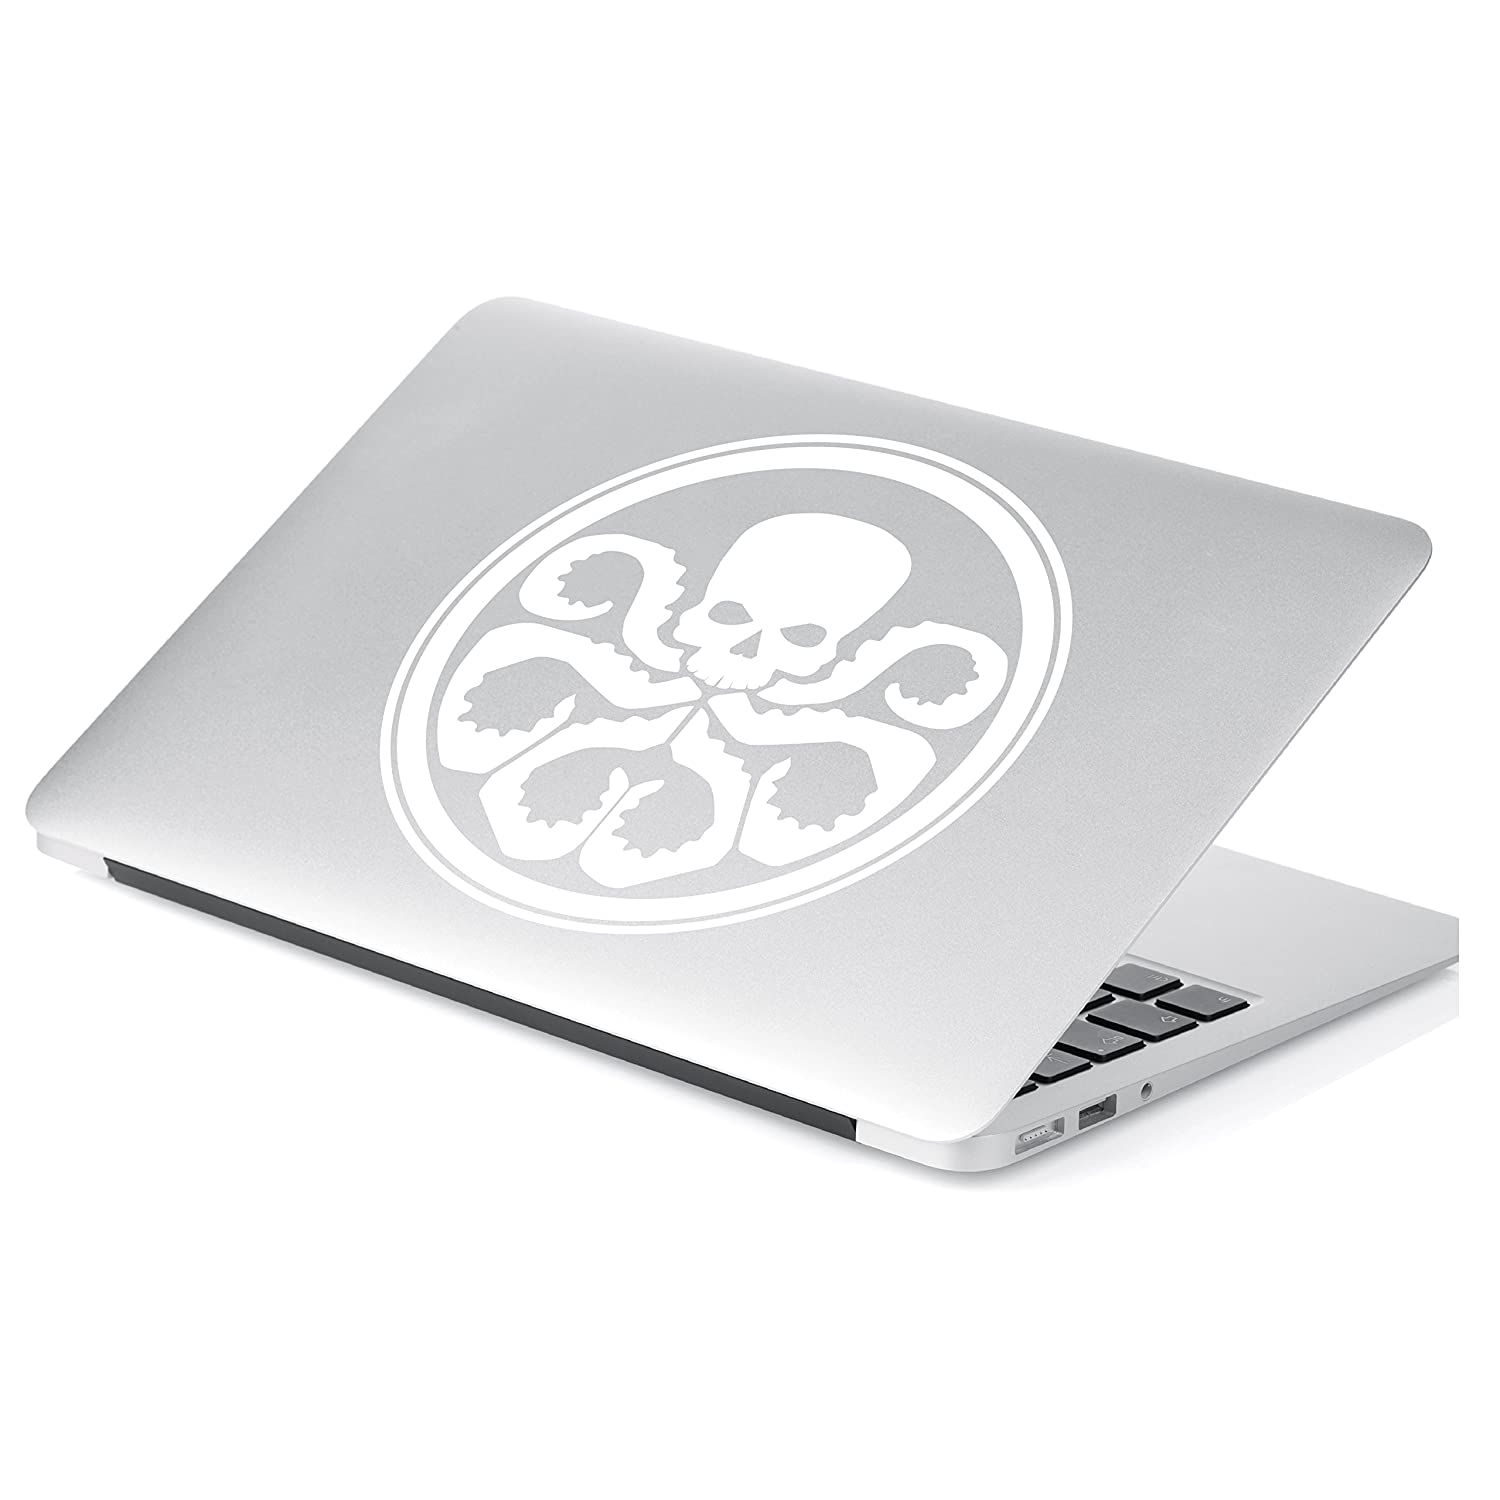 # 485 # 485 Laptop and More 6 x 6 Yoonek Graphics Hydra Inspired Marvel Agents of Shield Decal Sticker for Car Window 6 x 6, White Laptop and More